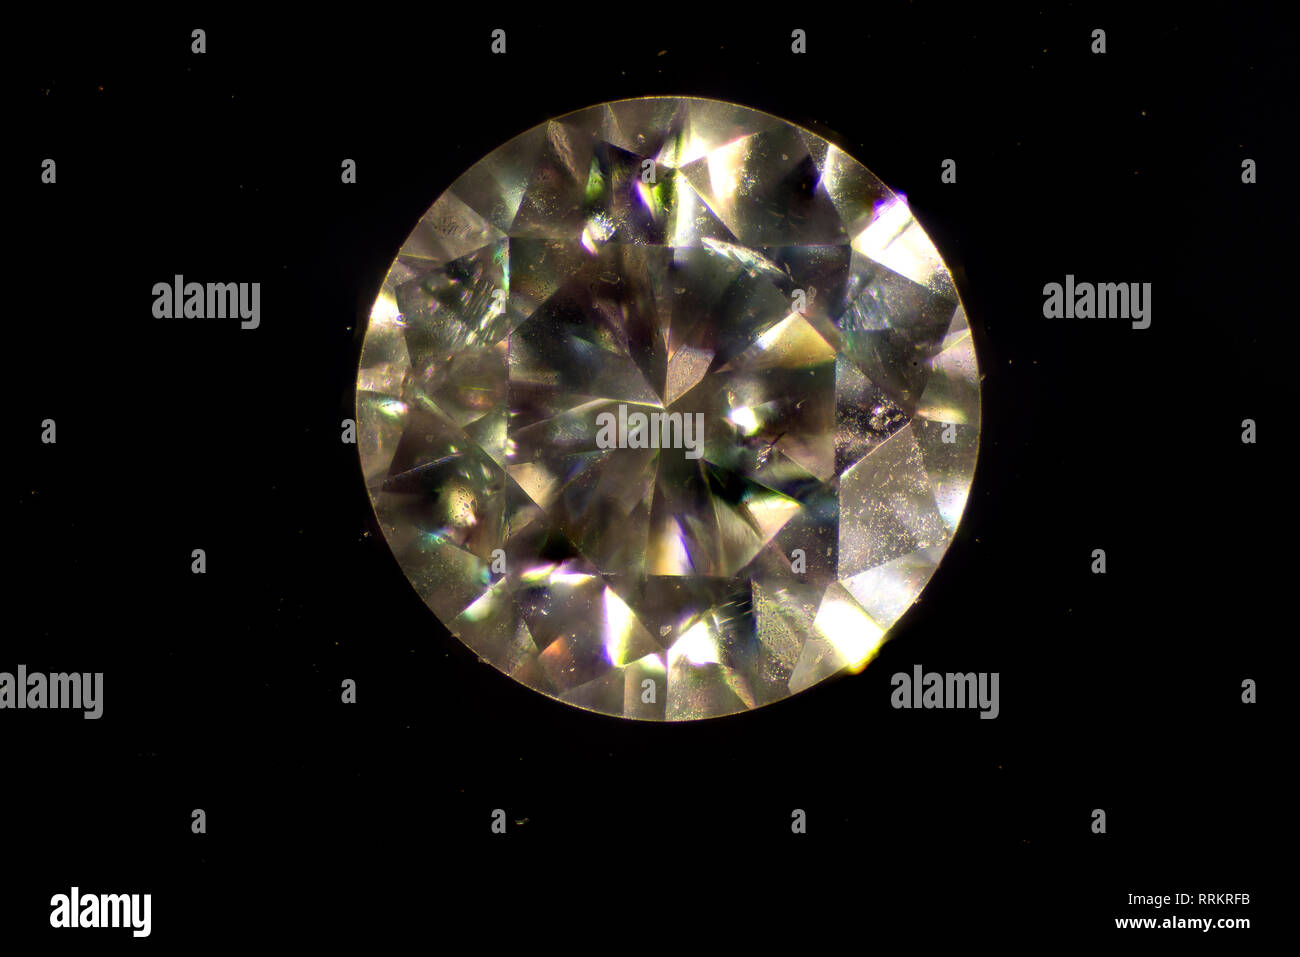 MIcroscopic image. Diamond is a solid form of the element carbon with its atoms arranged in a crystal structure called diamond cubic. - Stock Image